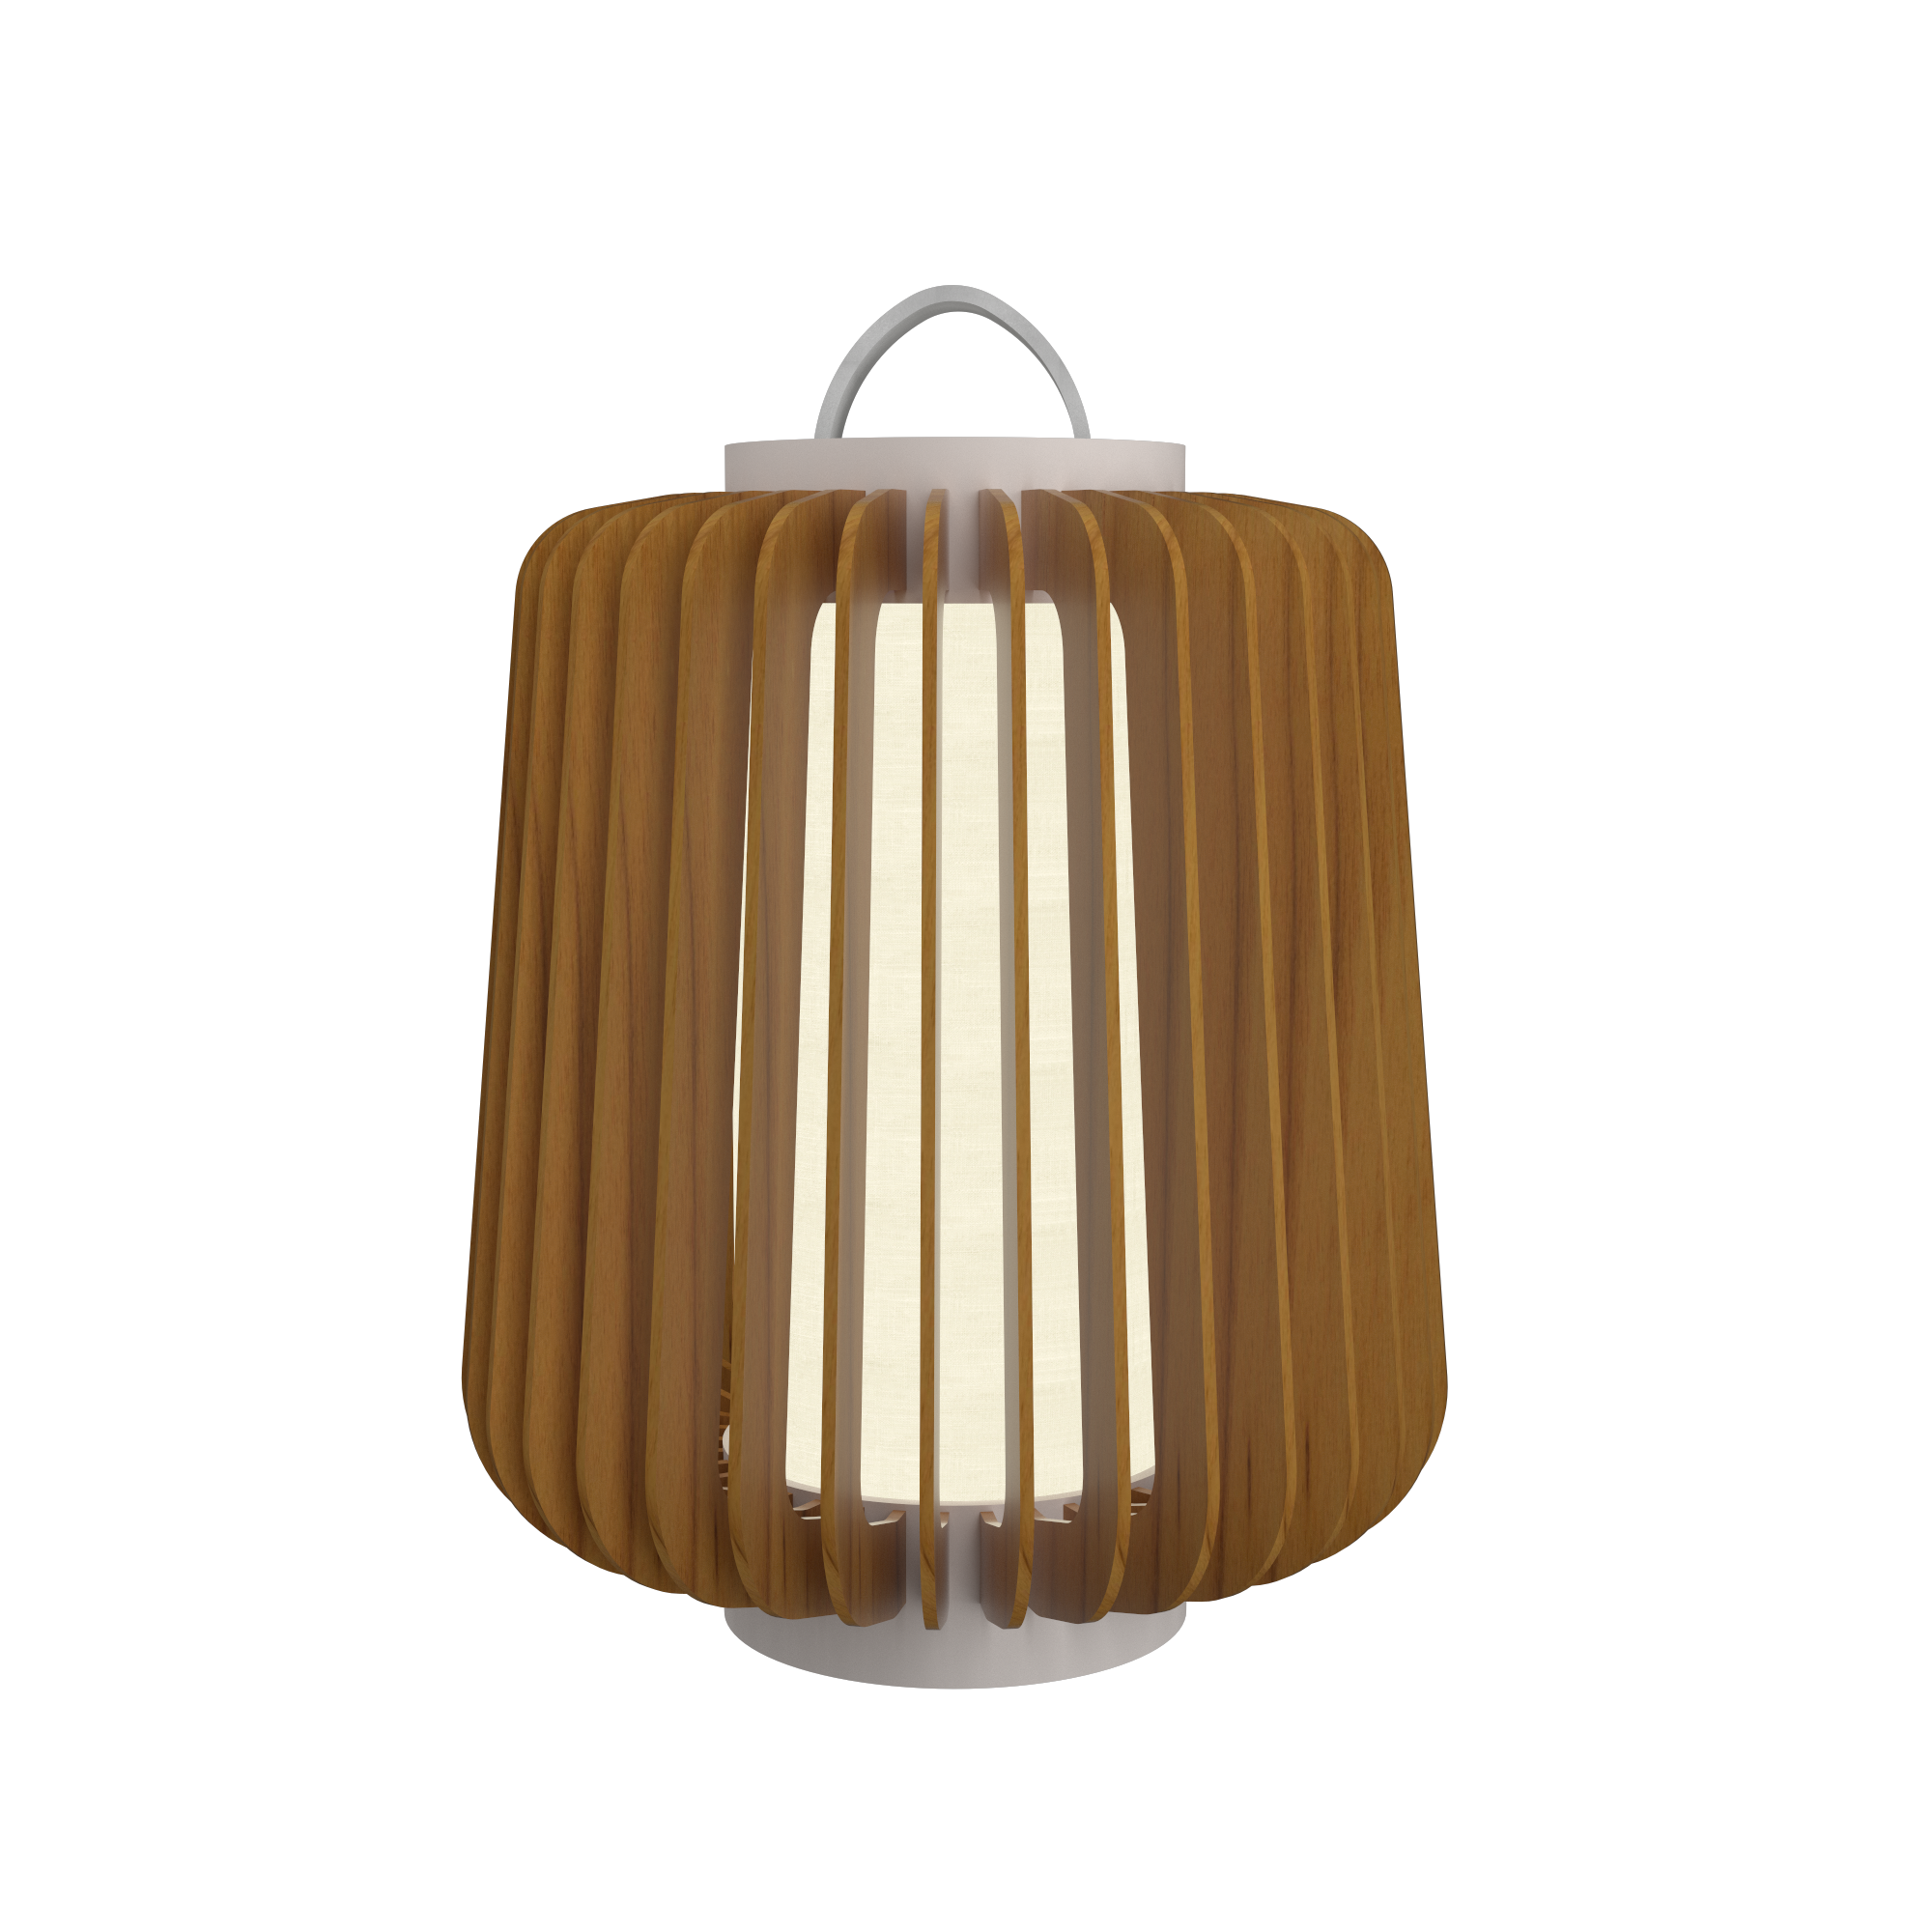 Floor Lamp Accord Stecche Di Legno 3035 - Stecche Di Legno Line Accord Lighting | 12. Teak